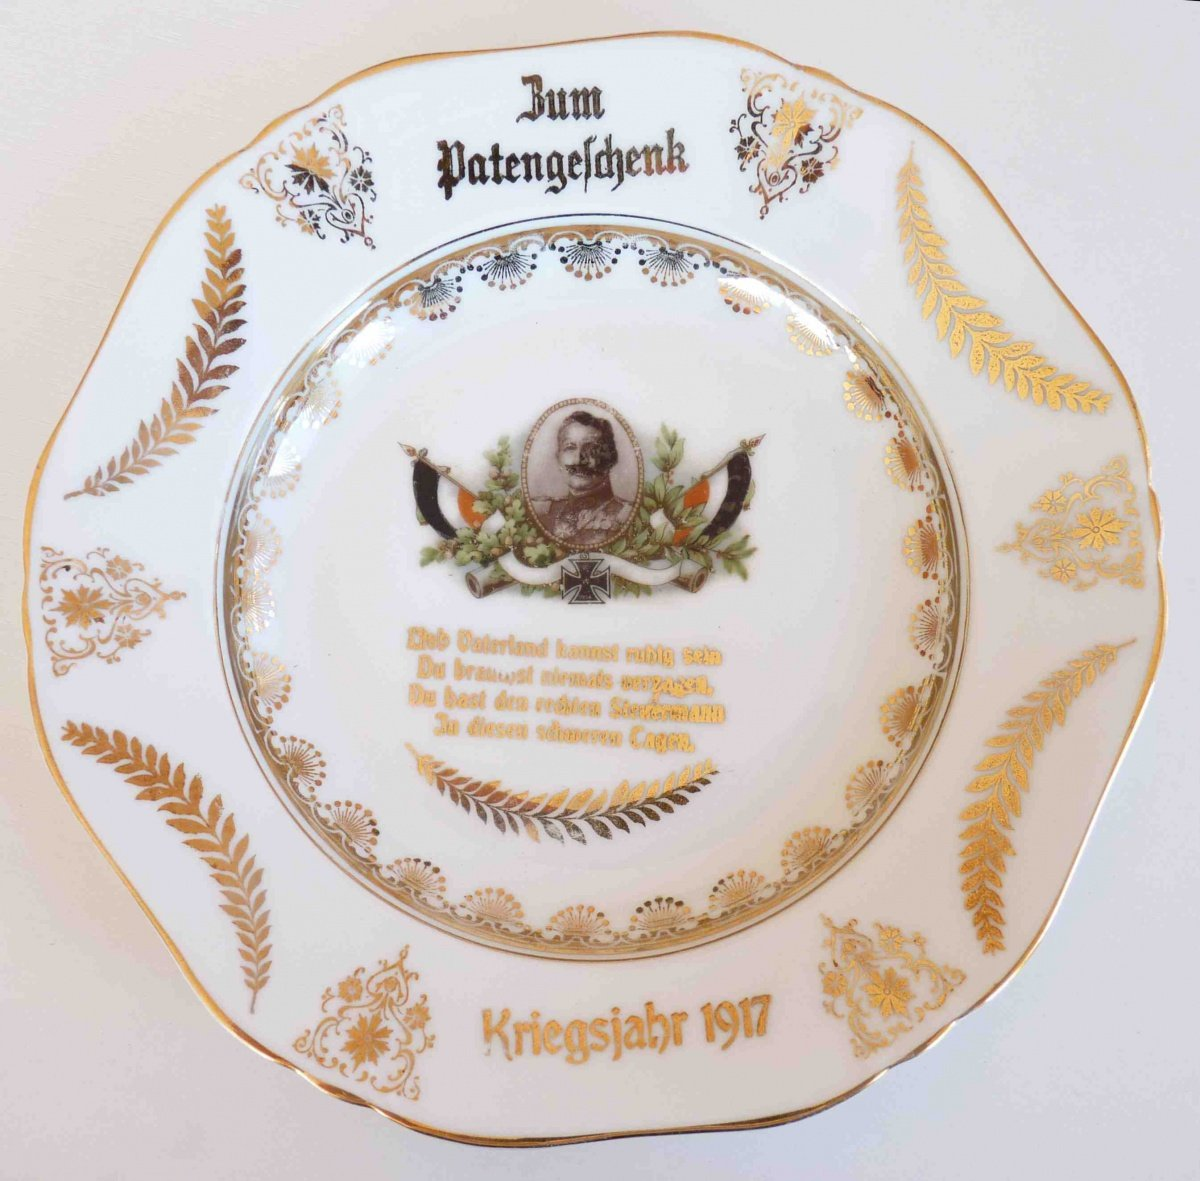 1917 - Decorated plate with portrait of Wilhelm